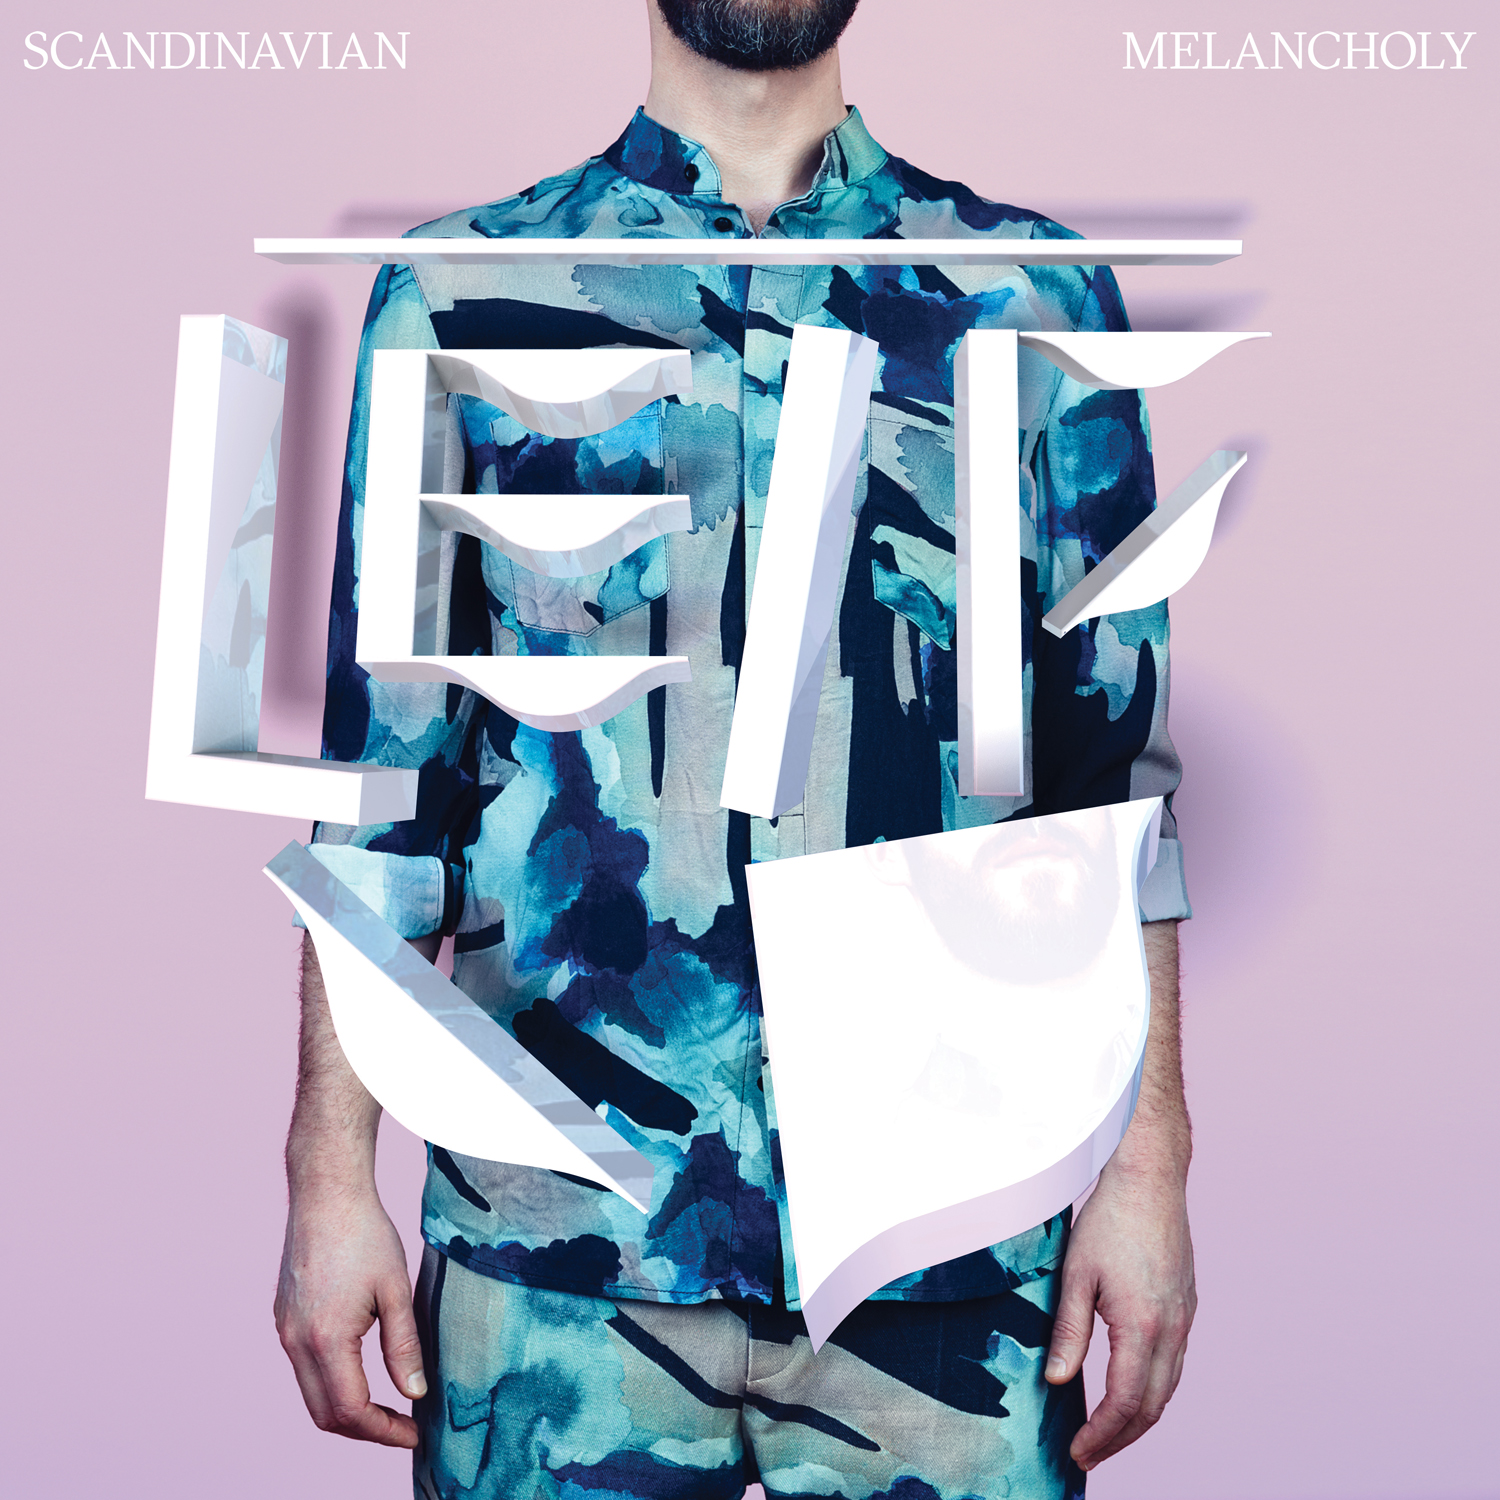 """Scandinavian Melancholy - LEIF´s solo debut is full of longing with stories and vignettes of lost dreams, intimacy, conservative Christianity and bi-sexuality. The Bergen-raised artist paints a picture of the beautiful and vulnerable with well-crafted pop songs inspired by sweaty techno clubs and dark Norwegian fjords.After several well received singles and radio-listing with the single Boys Who Want Love, the earlier Urørt finalist with the band Leif & The Future is now ready with his soloalbum.- One of life's great paradoxes is the yearning for something you never had, the feeling of loss over something that never happened. It can be simple things like the chance to study abroad or learn to play the guitar, but it can also be deeper things like finding a romantic partner, having children, or like me: exploring your own sexuality whilst you were still young. It's not necessarily too late, but the time that's lost you'll never get back. The album was written and produced between literature studies and music tours - in Stockholm, Berlin and a winter garden in Oslo. The sound of dark techno mixed with LEIF's distinctive voice and strong guitar melodies, makes him an impressive ambassador for contemporary Nordic pop. LEIF gives us a fresh depiction of what it means to be Scandinavian in 2018.- I believe that you can find a melancholic undertone in most of the art and music from Scandinavia. You find it in Grieg and Munch, but also in Røyksopp, Knausgård and even Ace of Base! Long dark winters stuck halfway down a fjord combined with the knowledge that we're far from the Centre, where """"it's"""" happening, creates a uniquely Scandinavian type of melancholy. One that's full of longing - with a tiny dash of hope. - It was a dream to work with Daniel Tjäder from Radio Det. and Korallreven, two of my absolute favourite bands. We got along immediately and despite the fact that I felt a bit like a Norwegian farmer lost in the middle of Stockholm, we had several fantastic weeks in"""